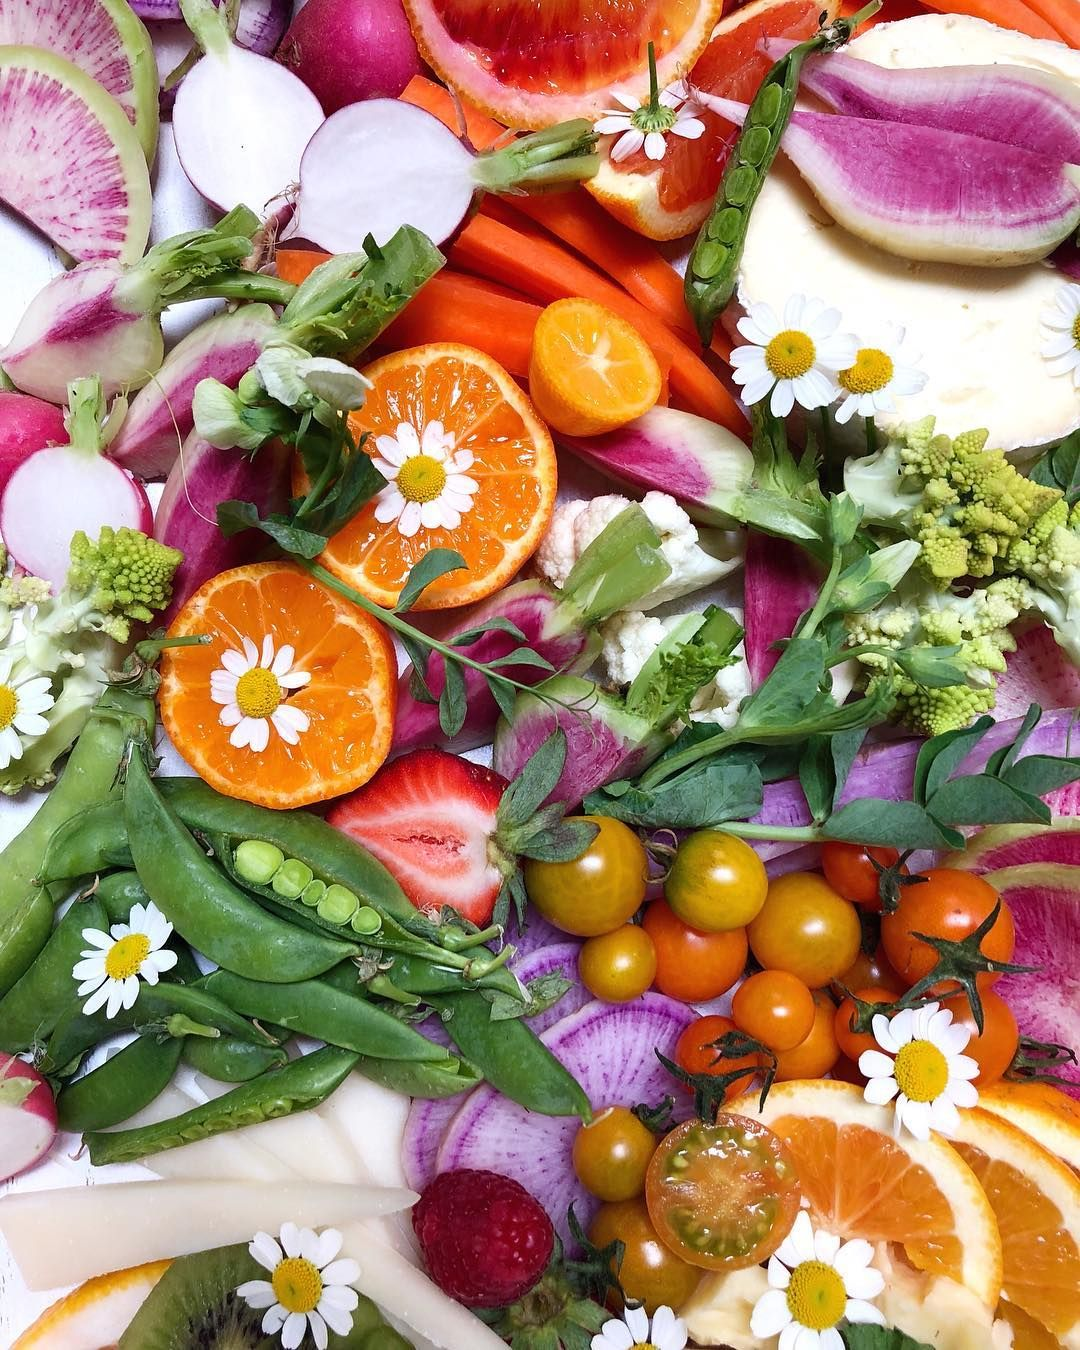 A visually stunning array of food - nature's inspiration!